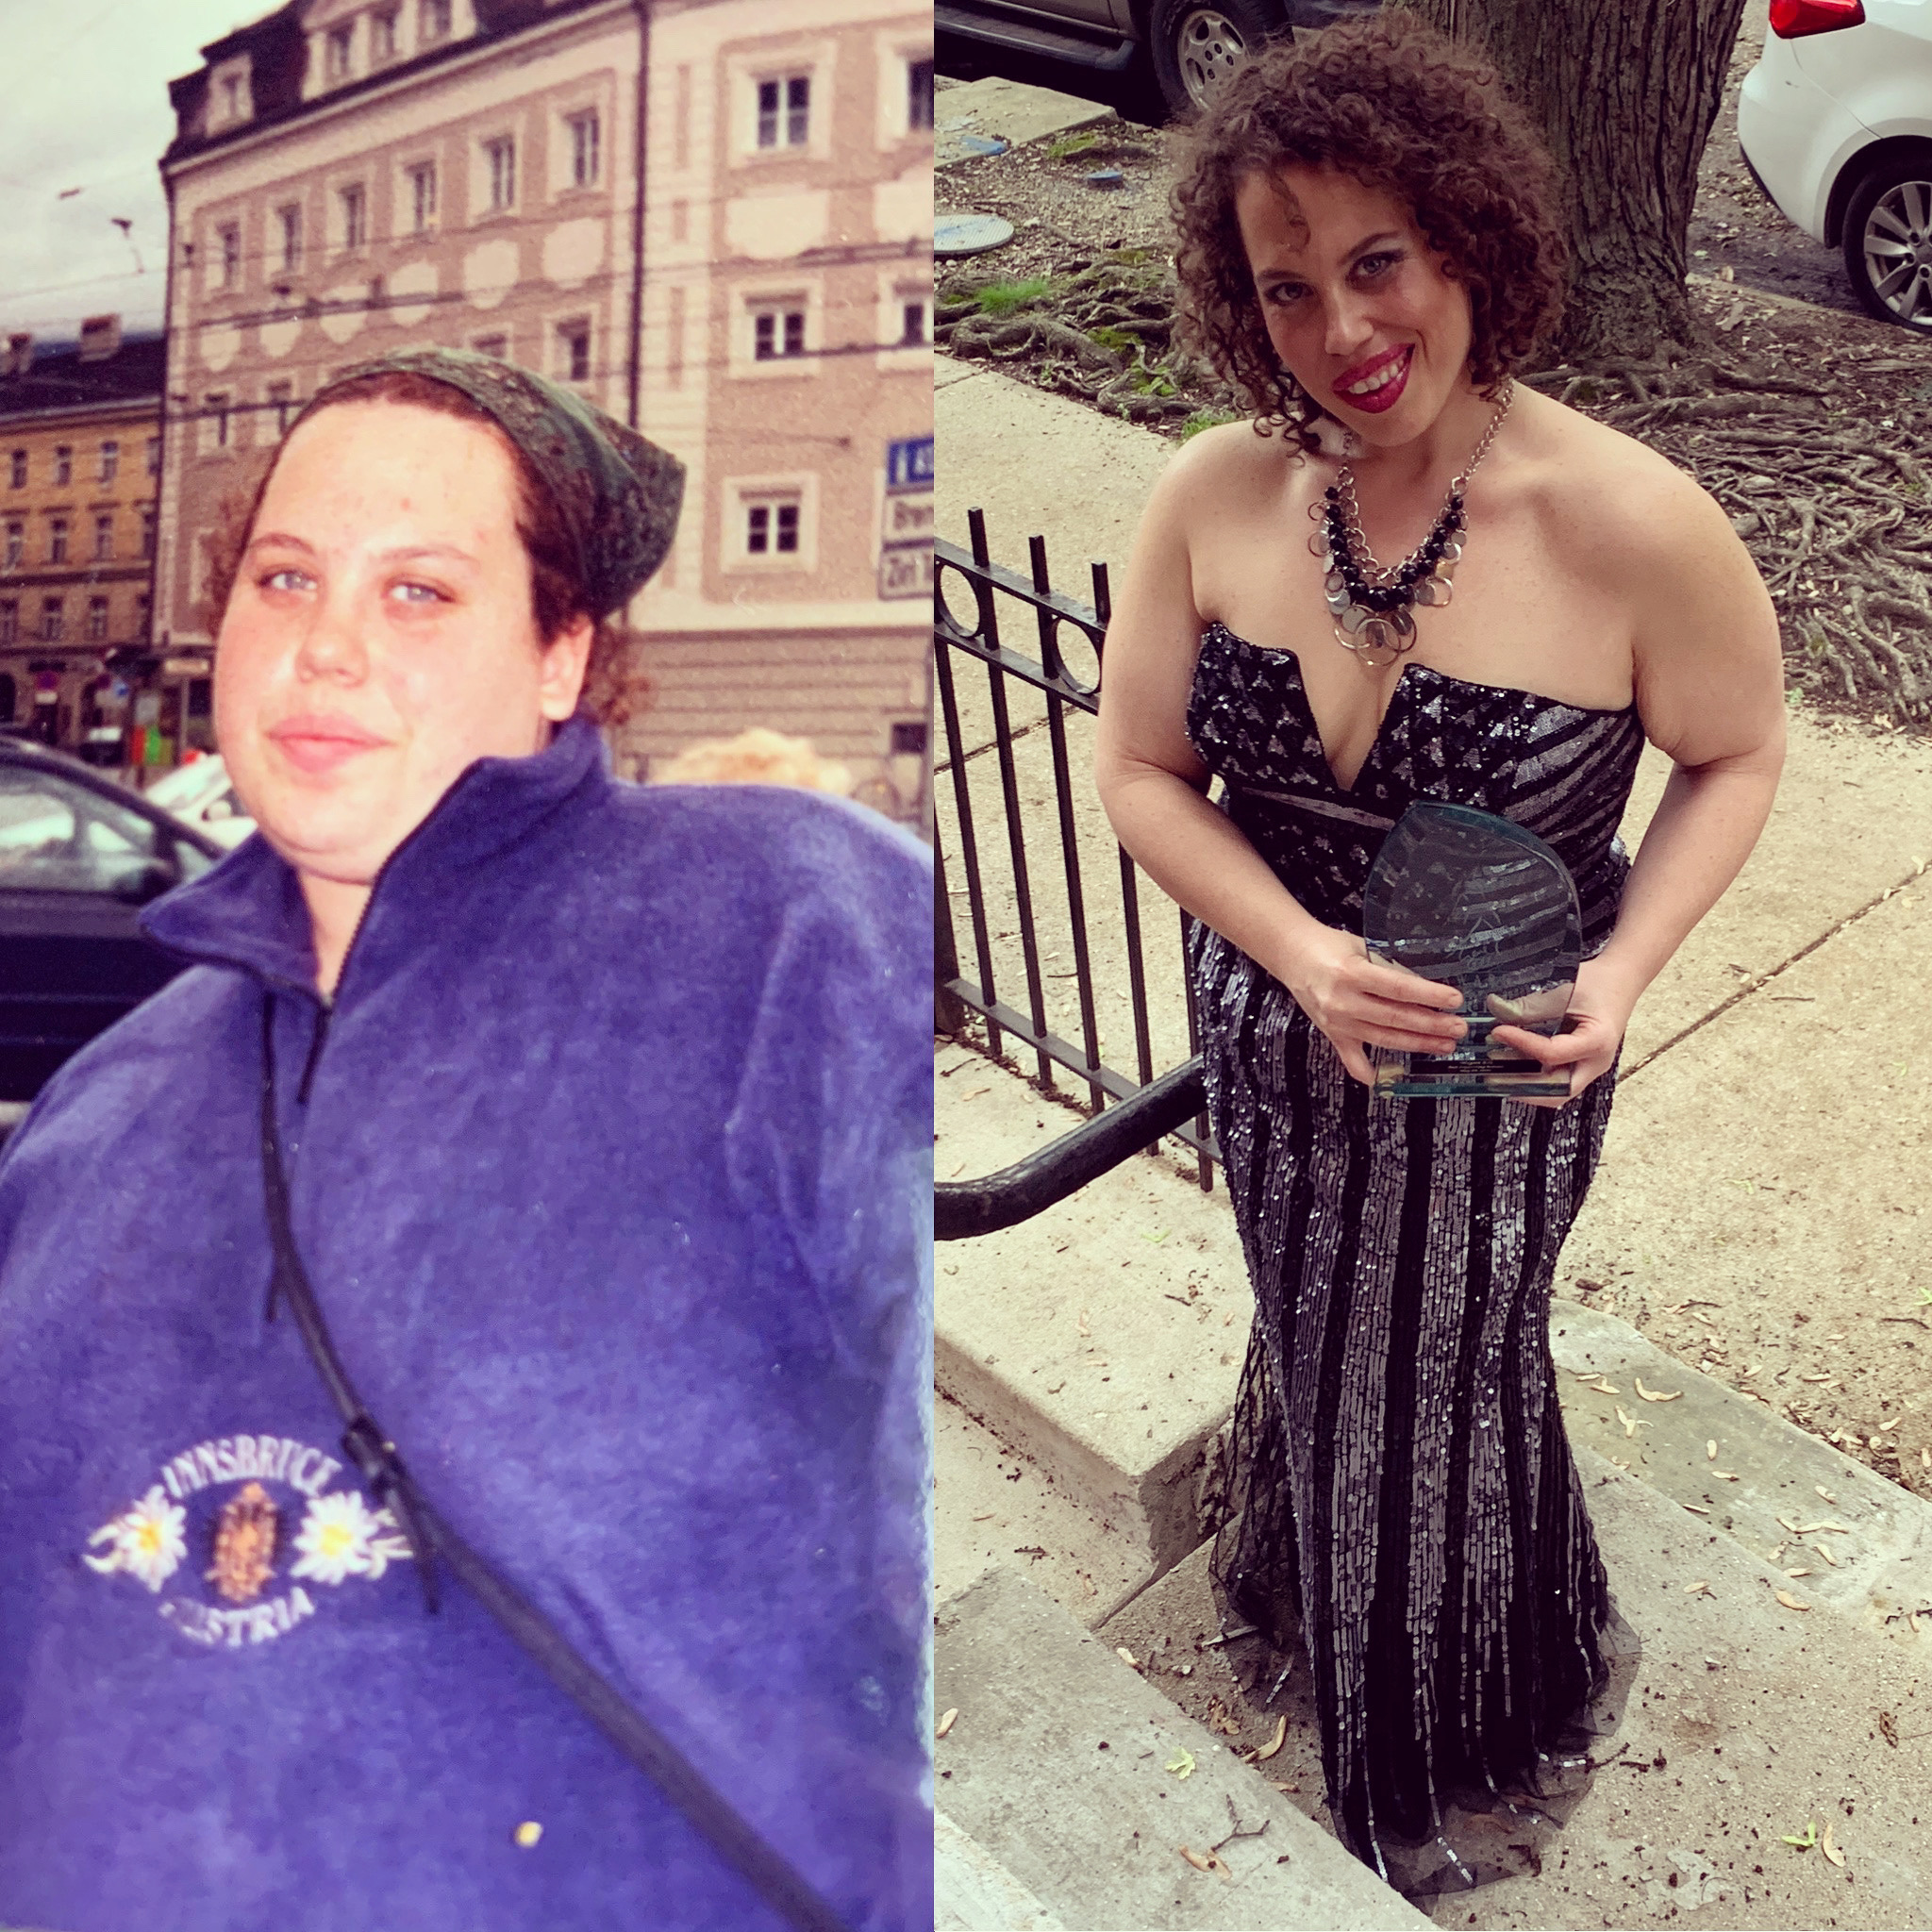 Before and After Photo, Weight loss, Health and Fitness, Healthy eating, Body positivity, mindfulness, cooking for weight loss